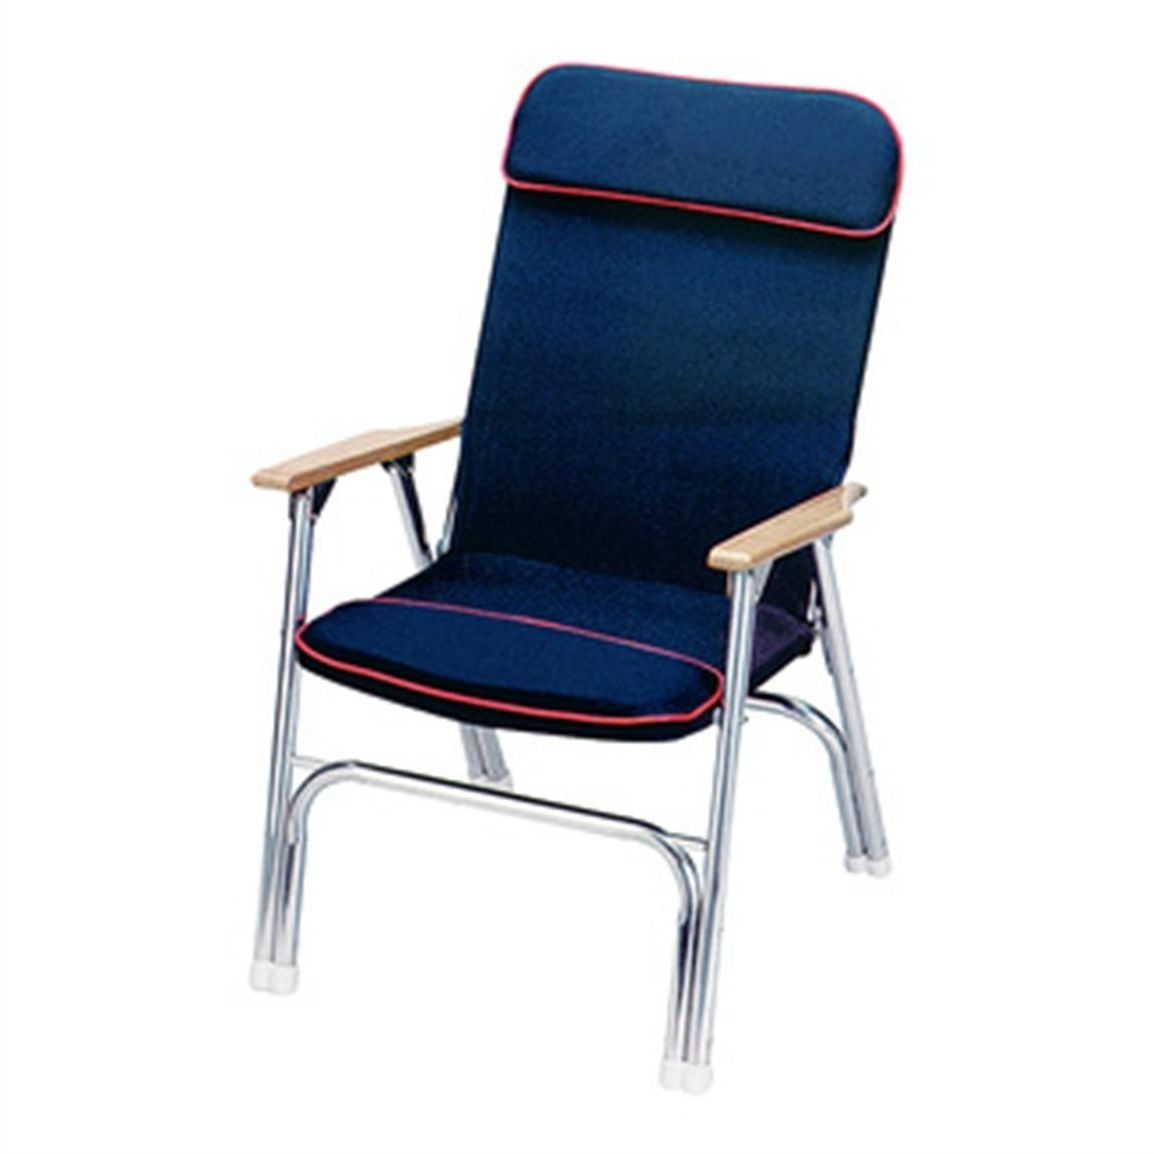 Attractive Folding Chairs For Boats